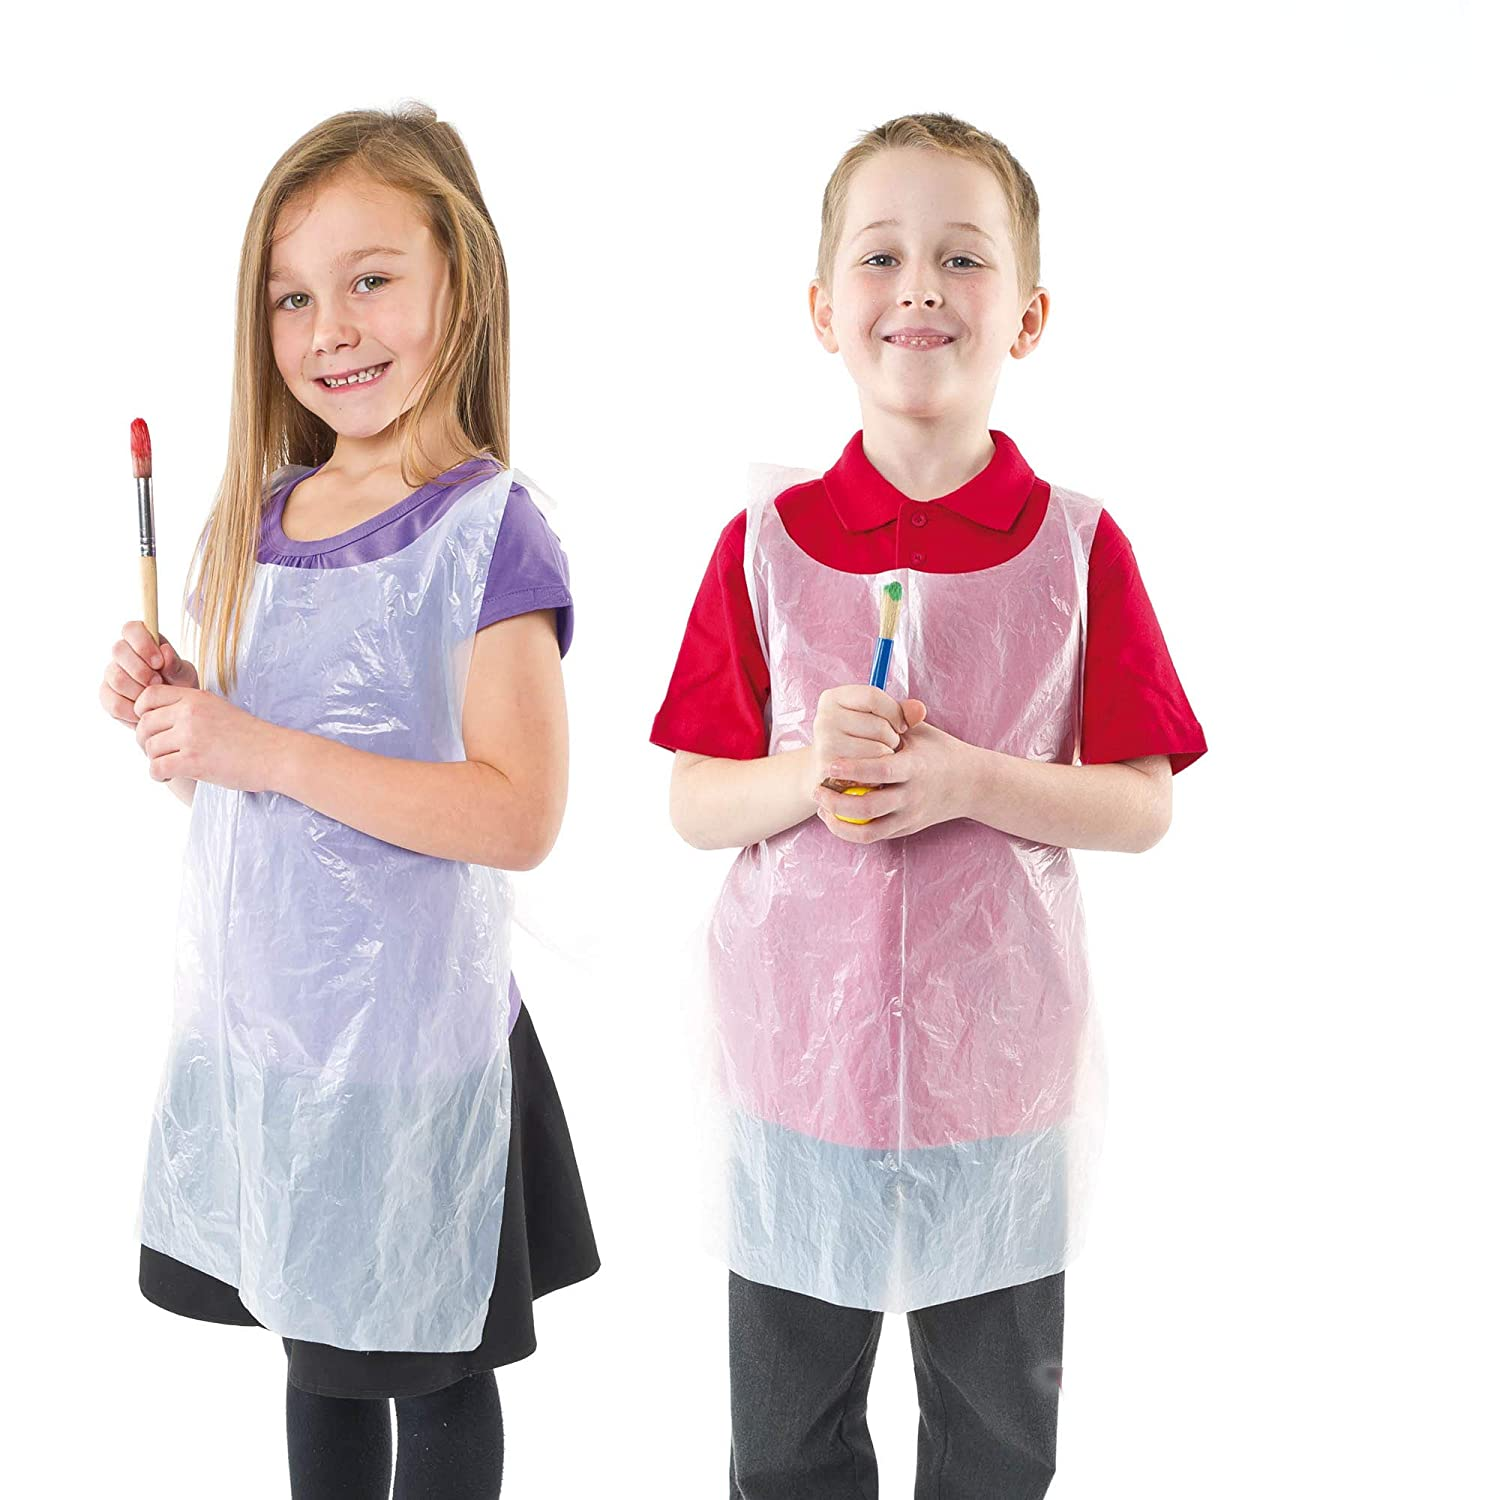 Ancomfort Restaurant Coverall. 100PCS 25x40in For Cokking Bib Style Disposable Plastic Apron Pe Waterproof Transparent Plastic Apron Painting Disposable Apron